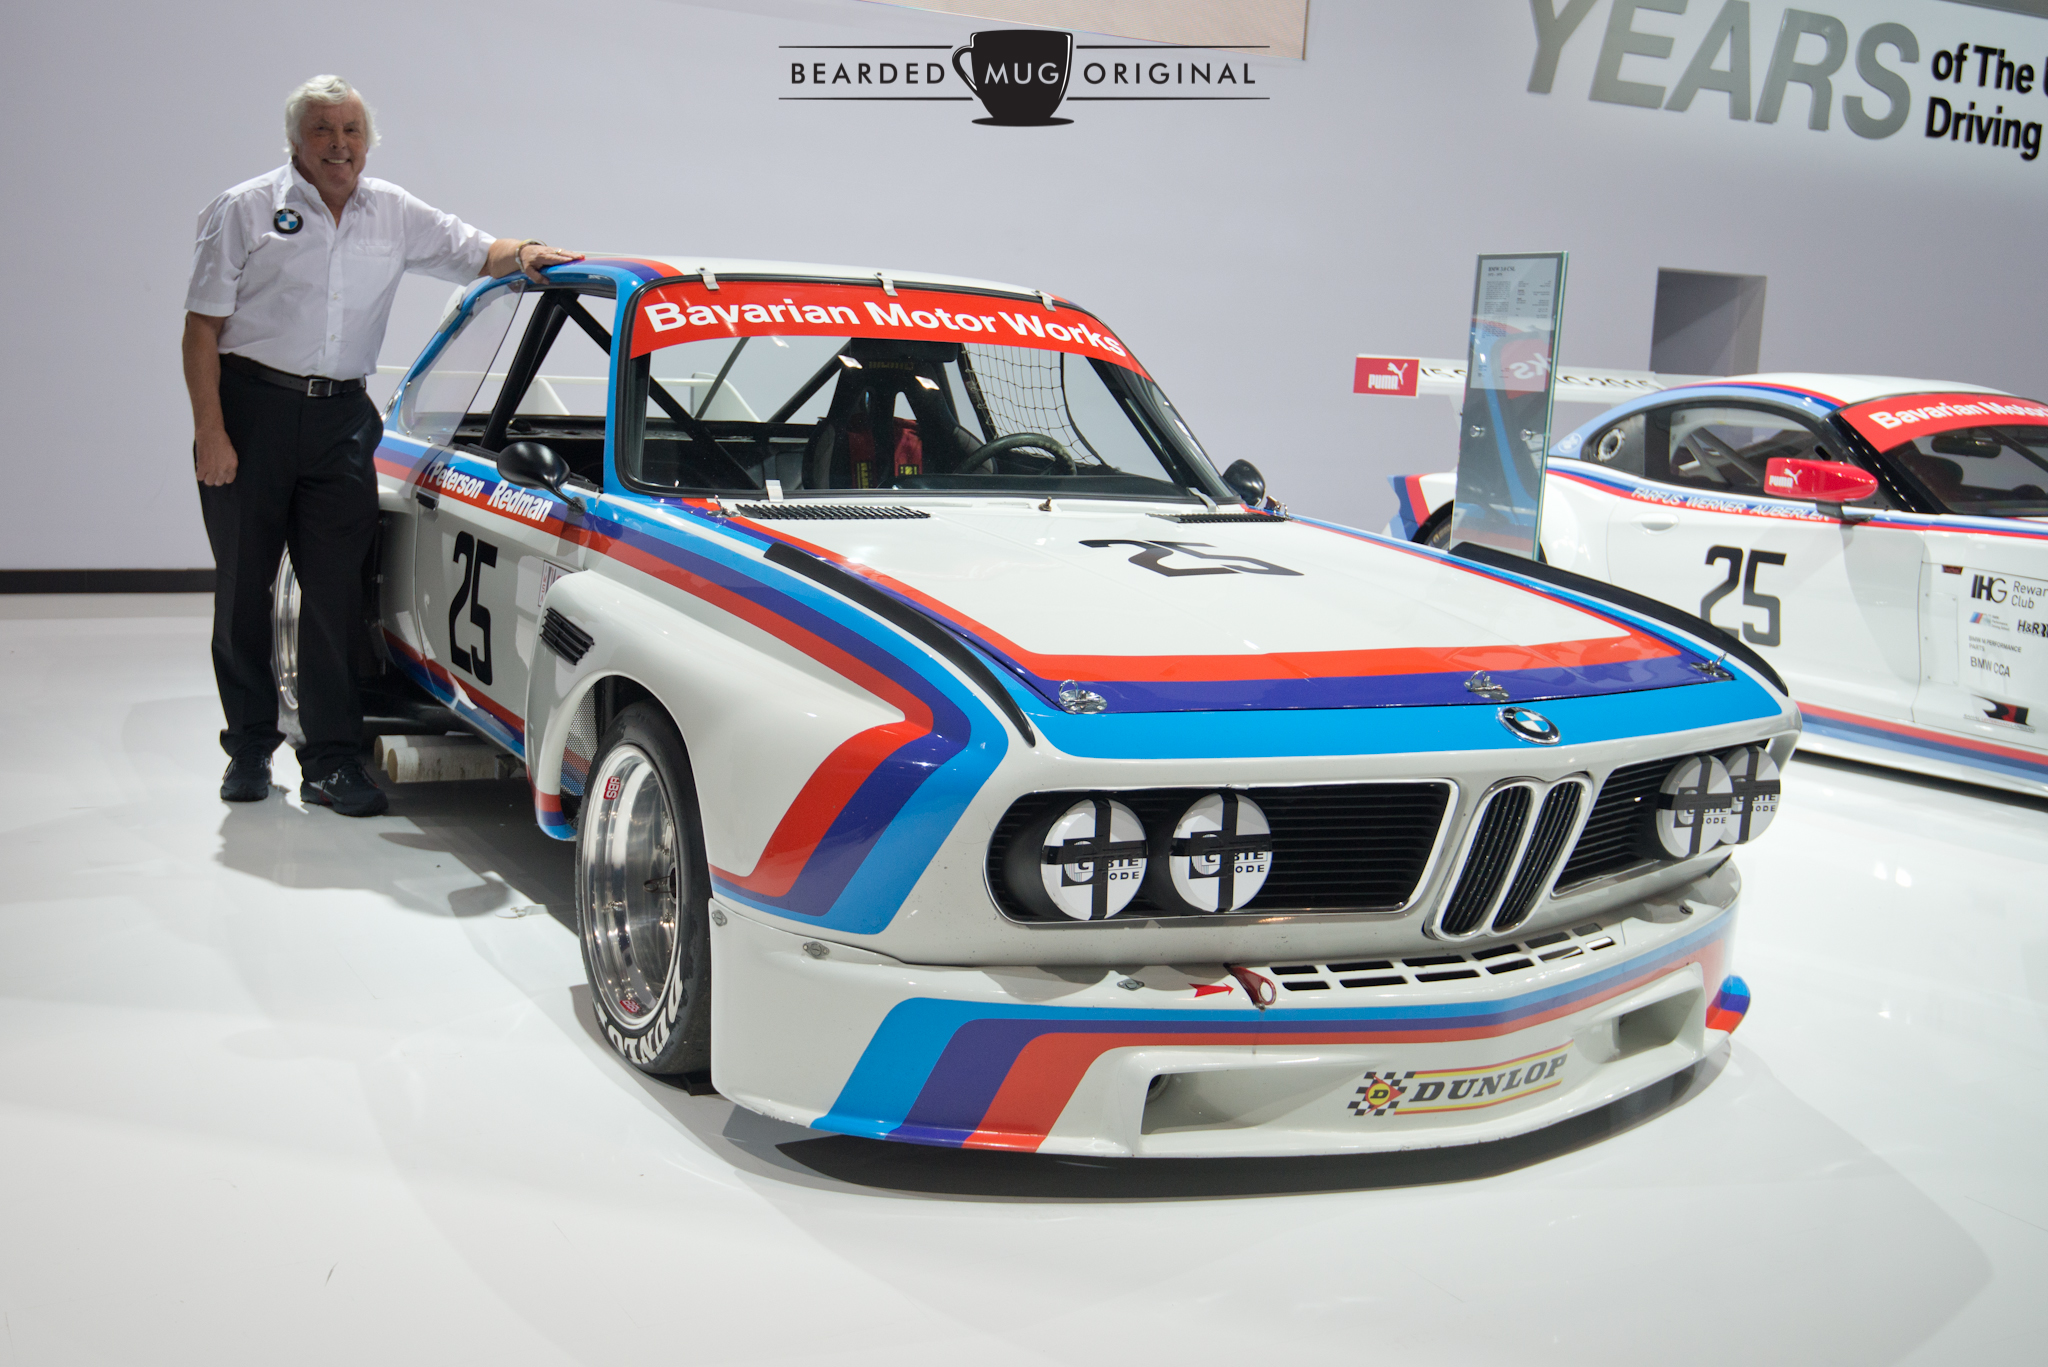 To celebrate 40 years of racing, BMW brought out their 1975 3.0 CSL, along with its driver Brian Redman.